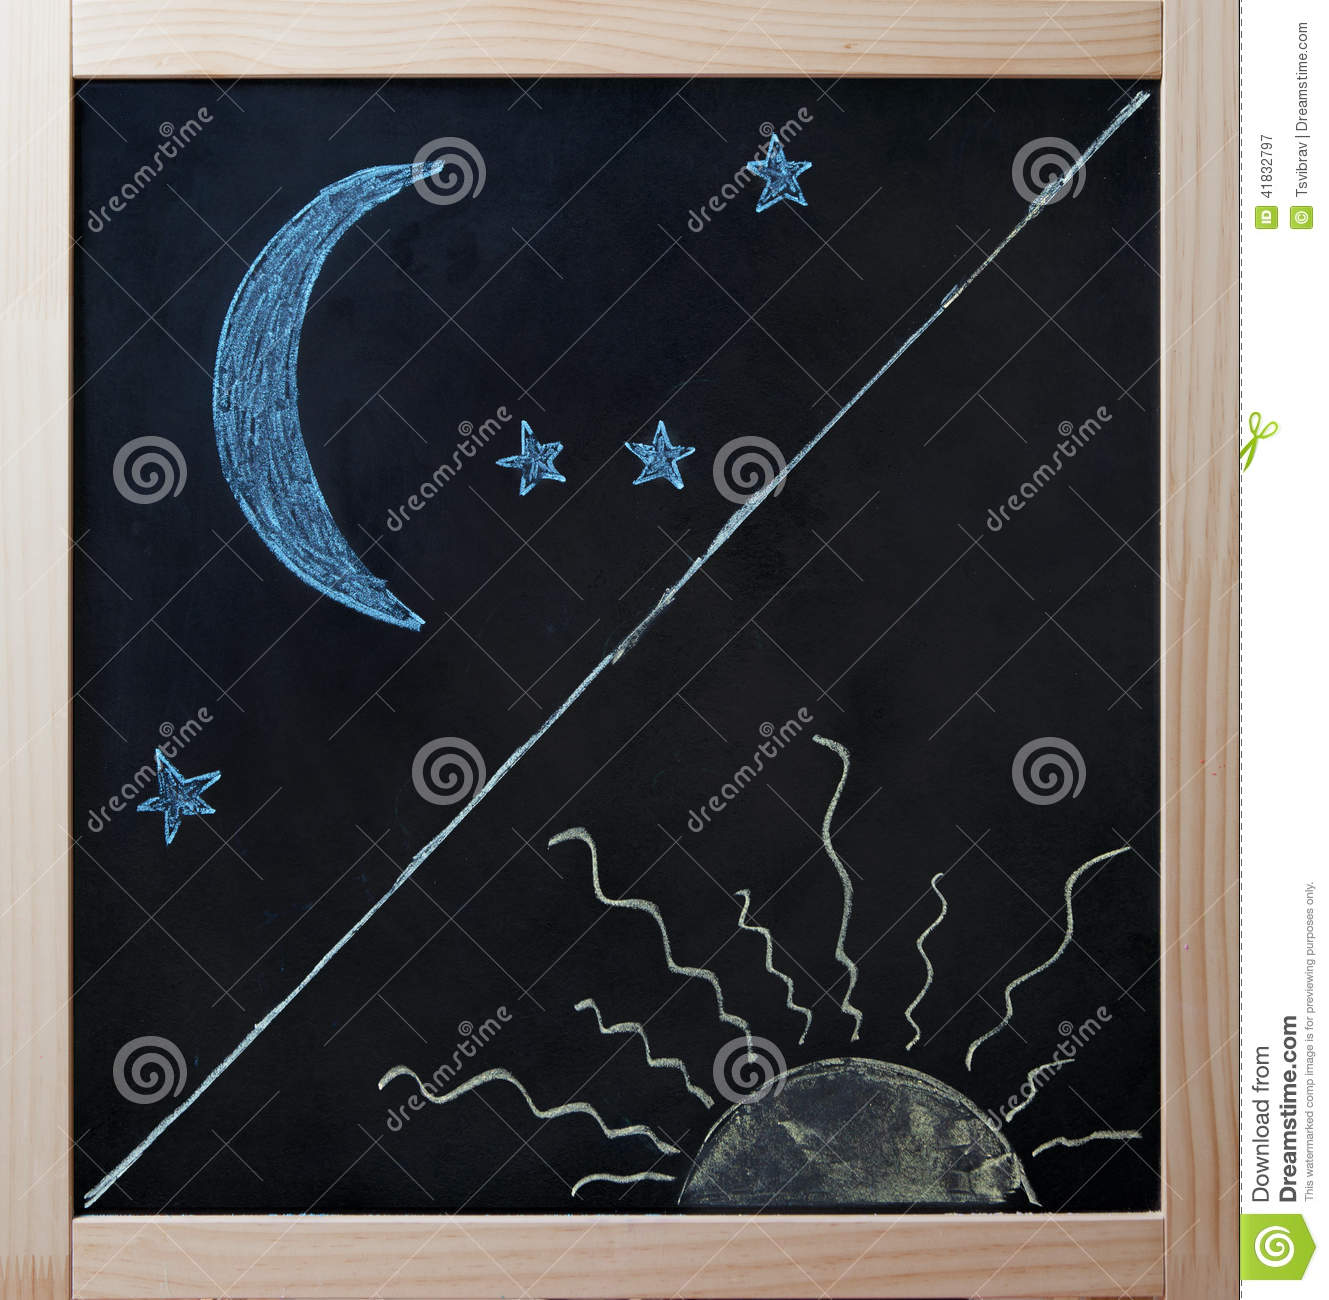 Day And Night Opposites Concept On Blackboard